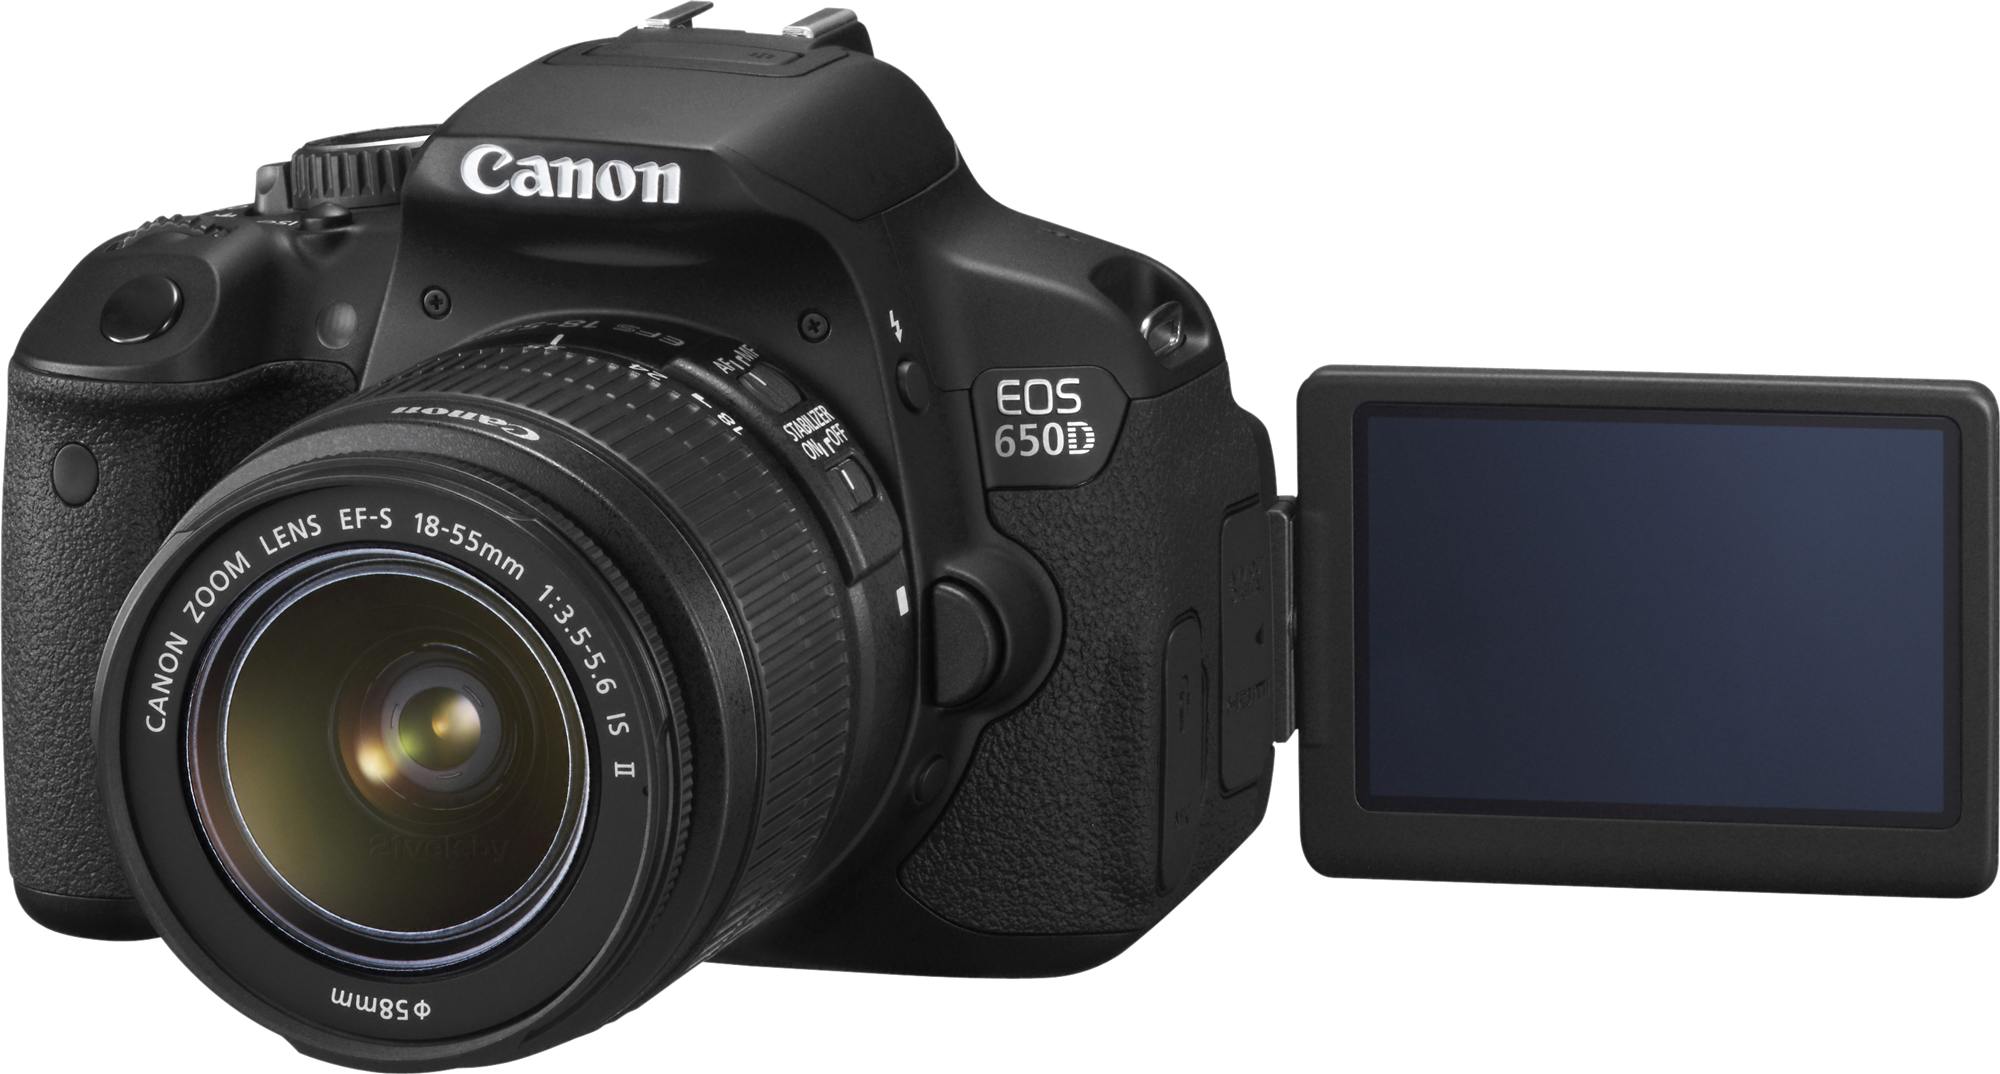 EOS 650D Triple Kit EFS18-55mm + EFS75-300mm + EF50mm 21vek.by 10969000.000